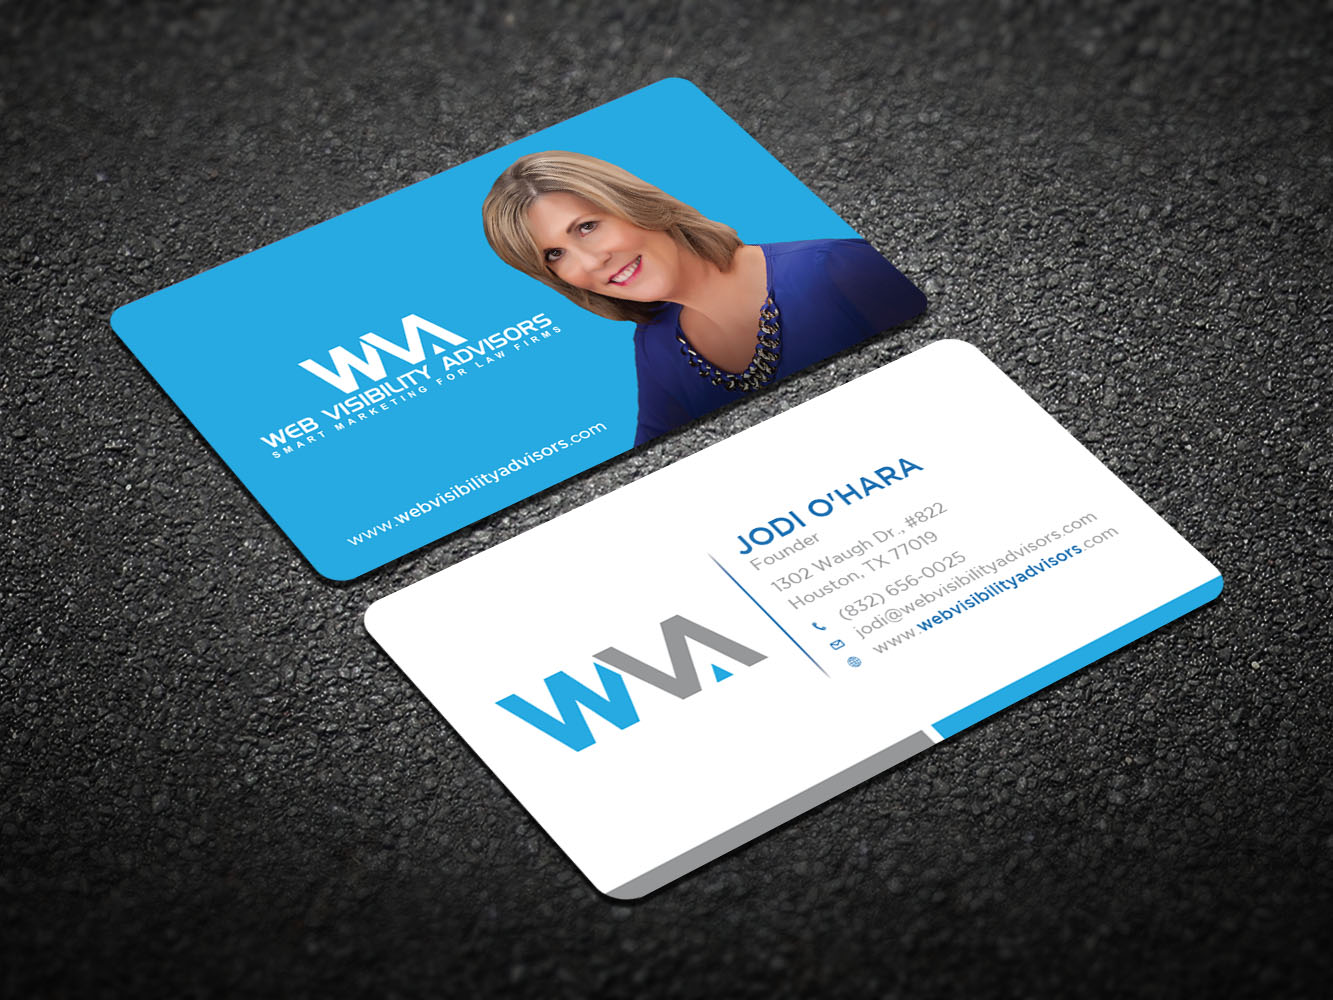 Upmarket, Serious Business Card Design for Web Visibility Advisors ...